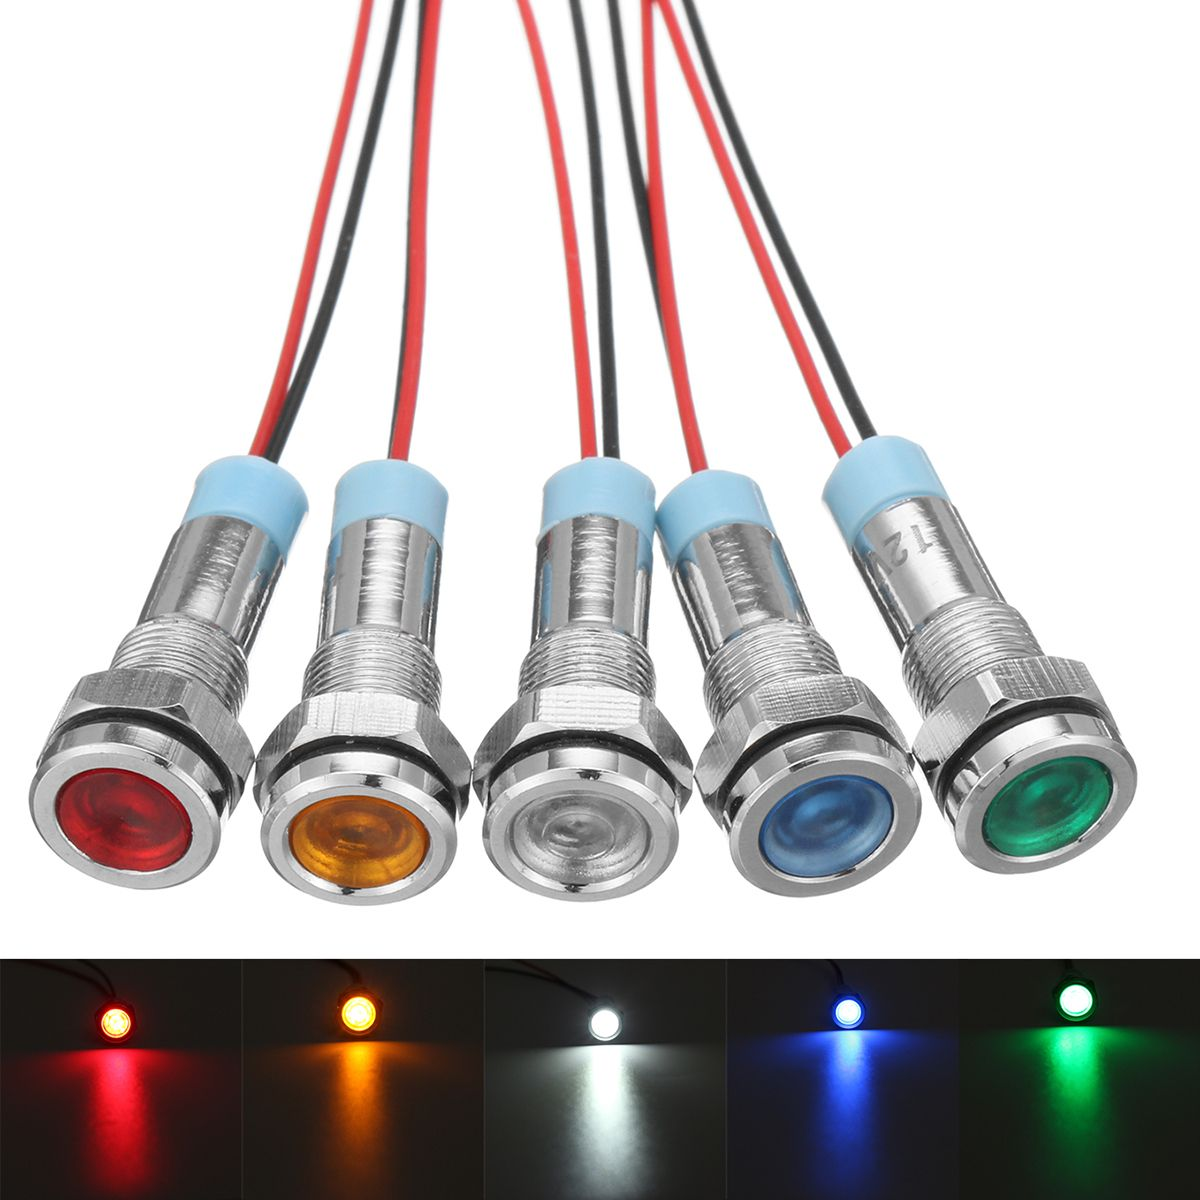 12v 6mm Led Indicator Light Pilot Dash Lamp Motorccyle Car Truck Boat Metal Indicator Lights Led Indicator Cars Trucks